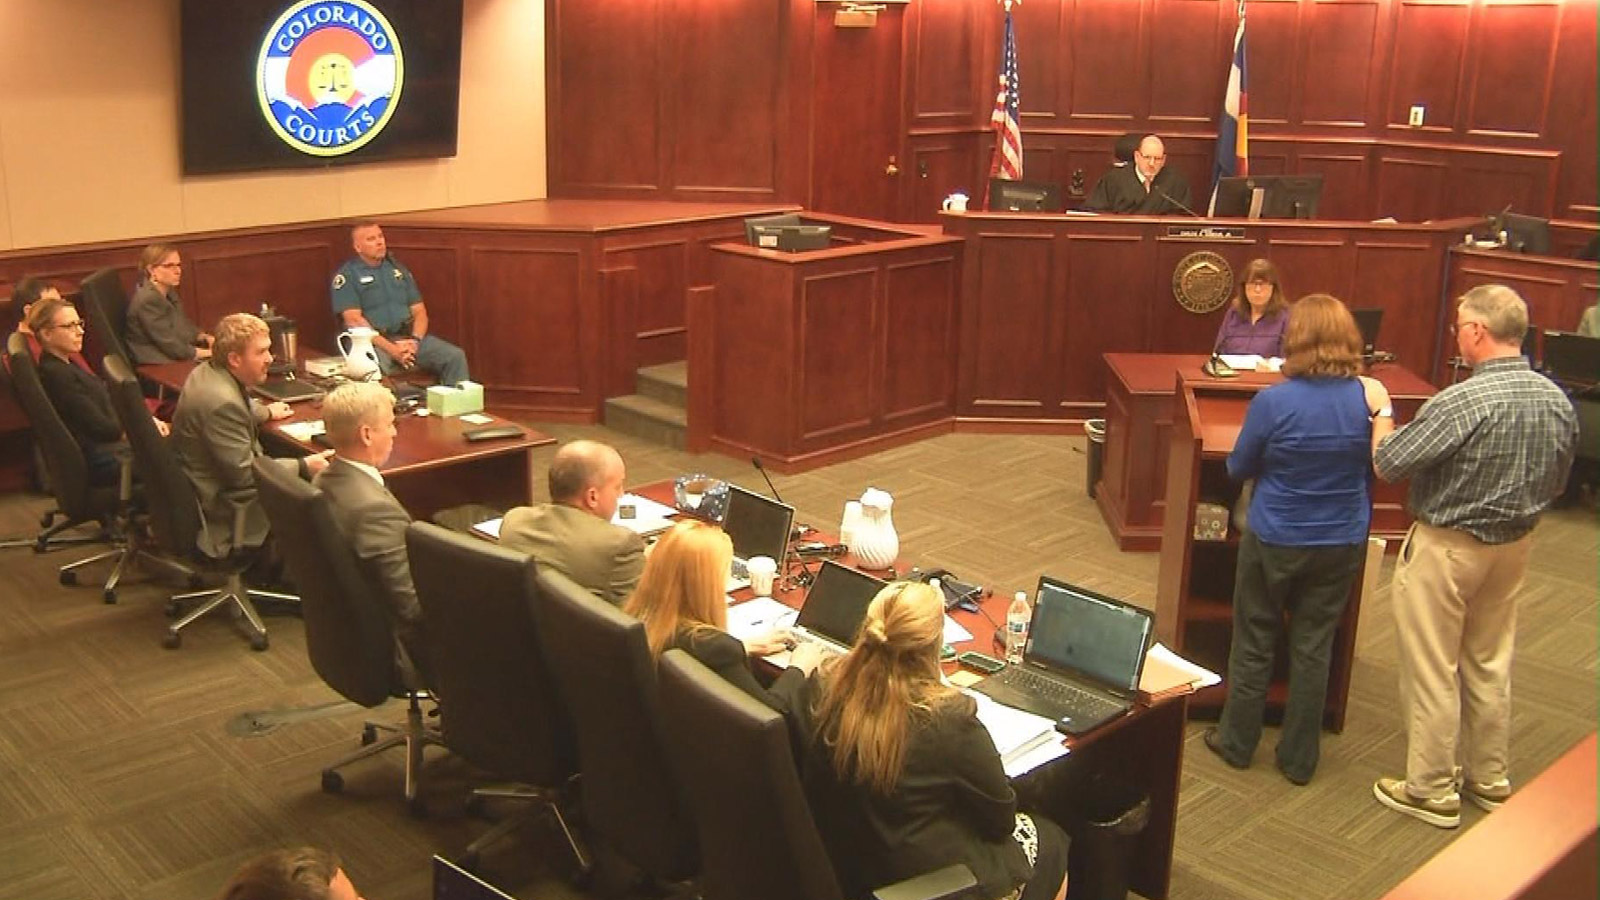 Robert and Arlene Holmes in court on Aug. 25, 2015 (credit: CBS)